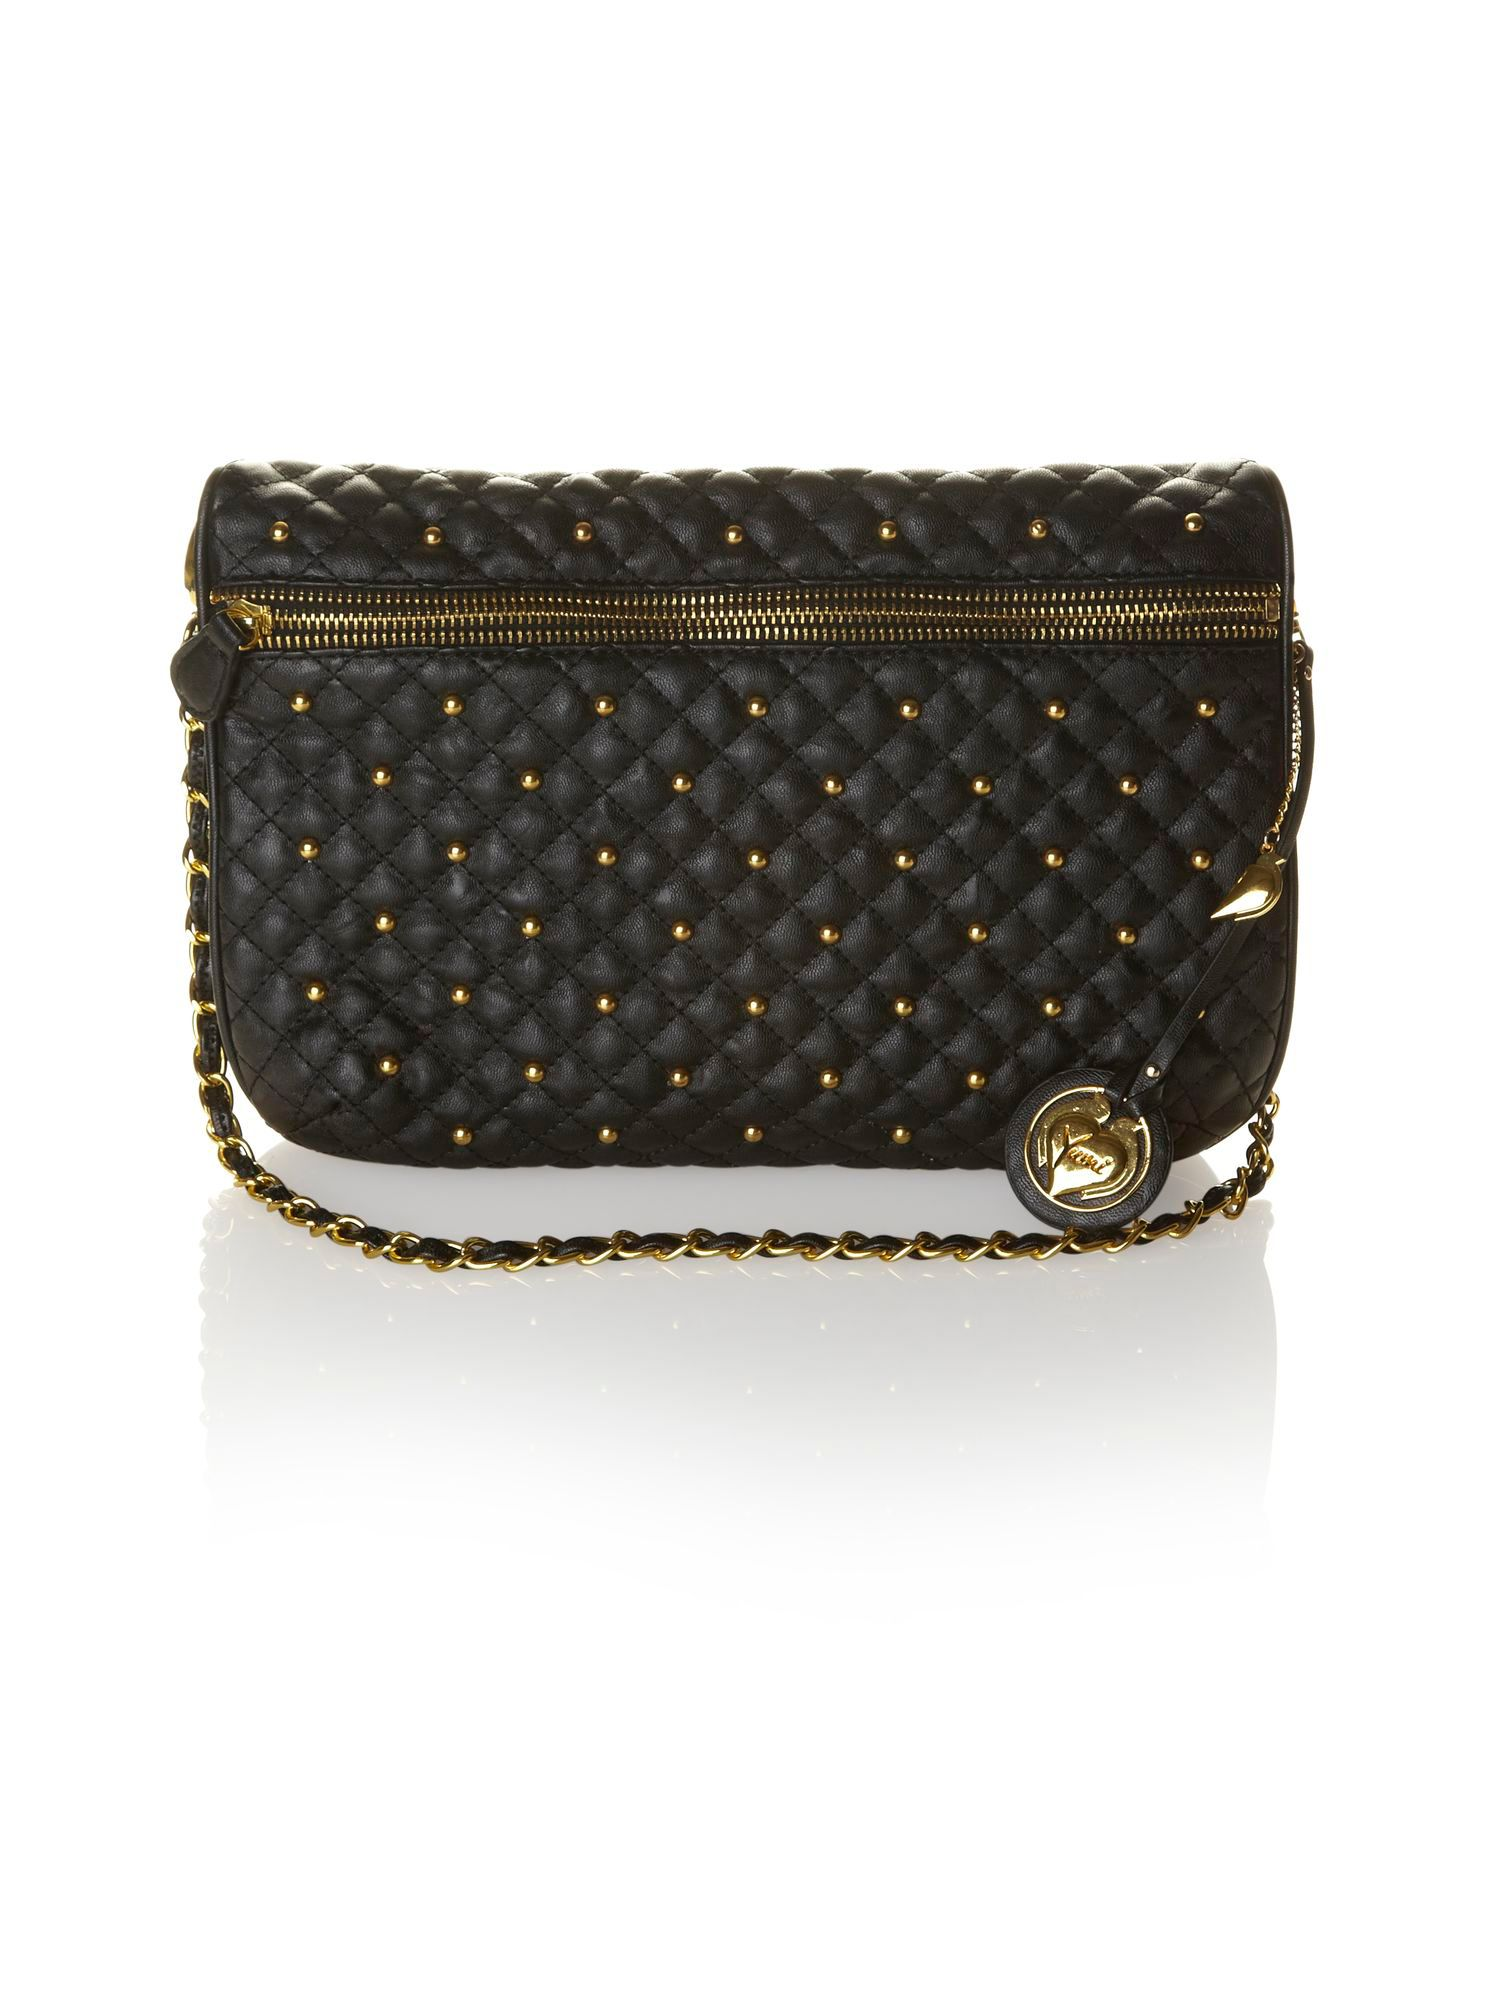 Quilted stud bag.